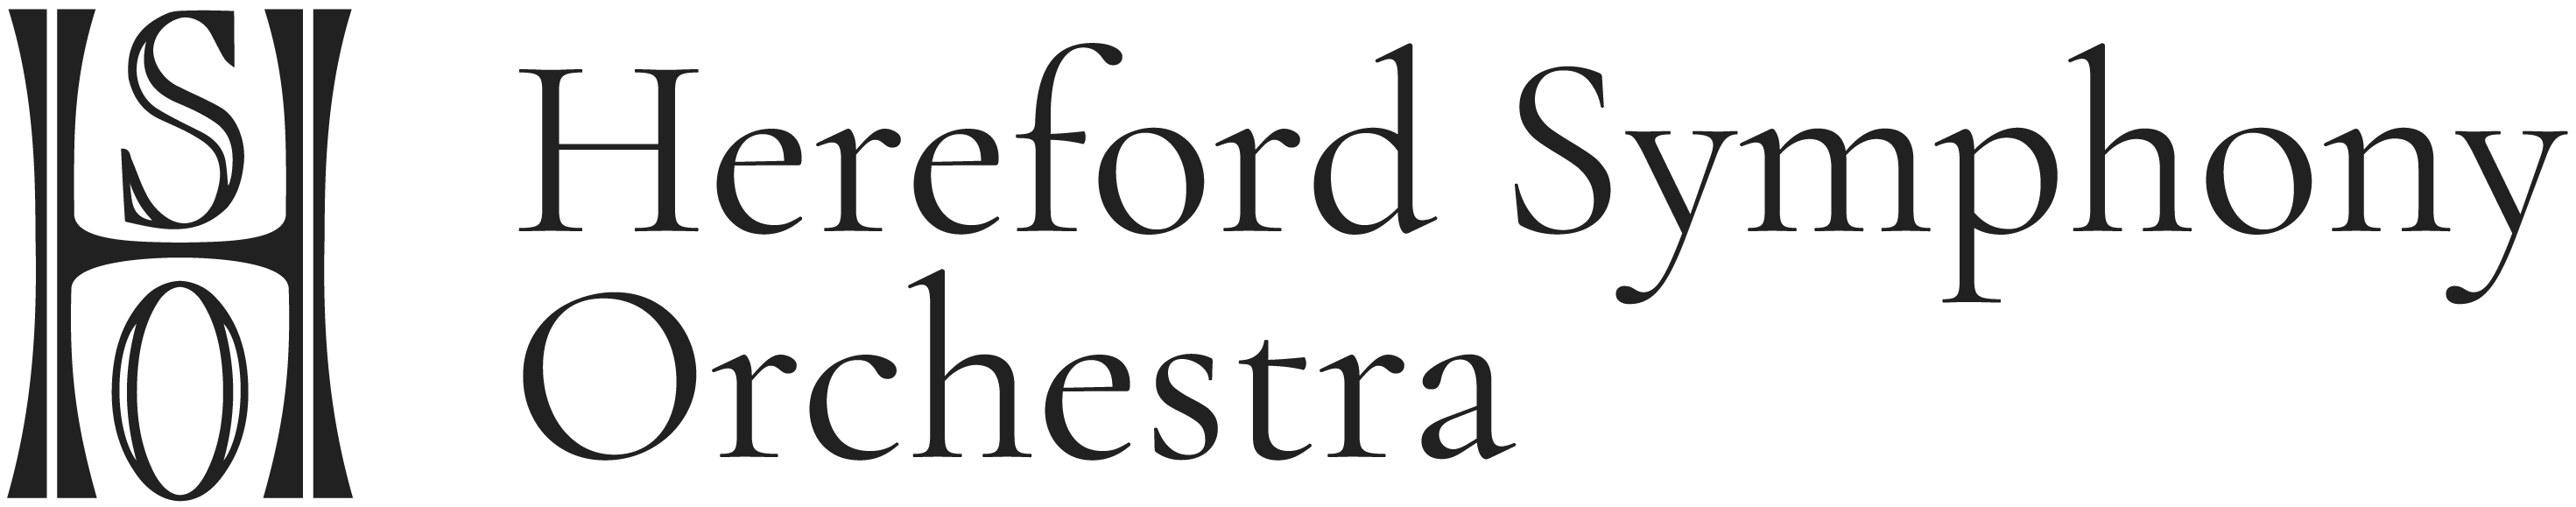 Hereford Symphony Orchestra